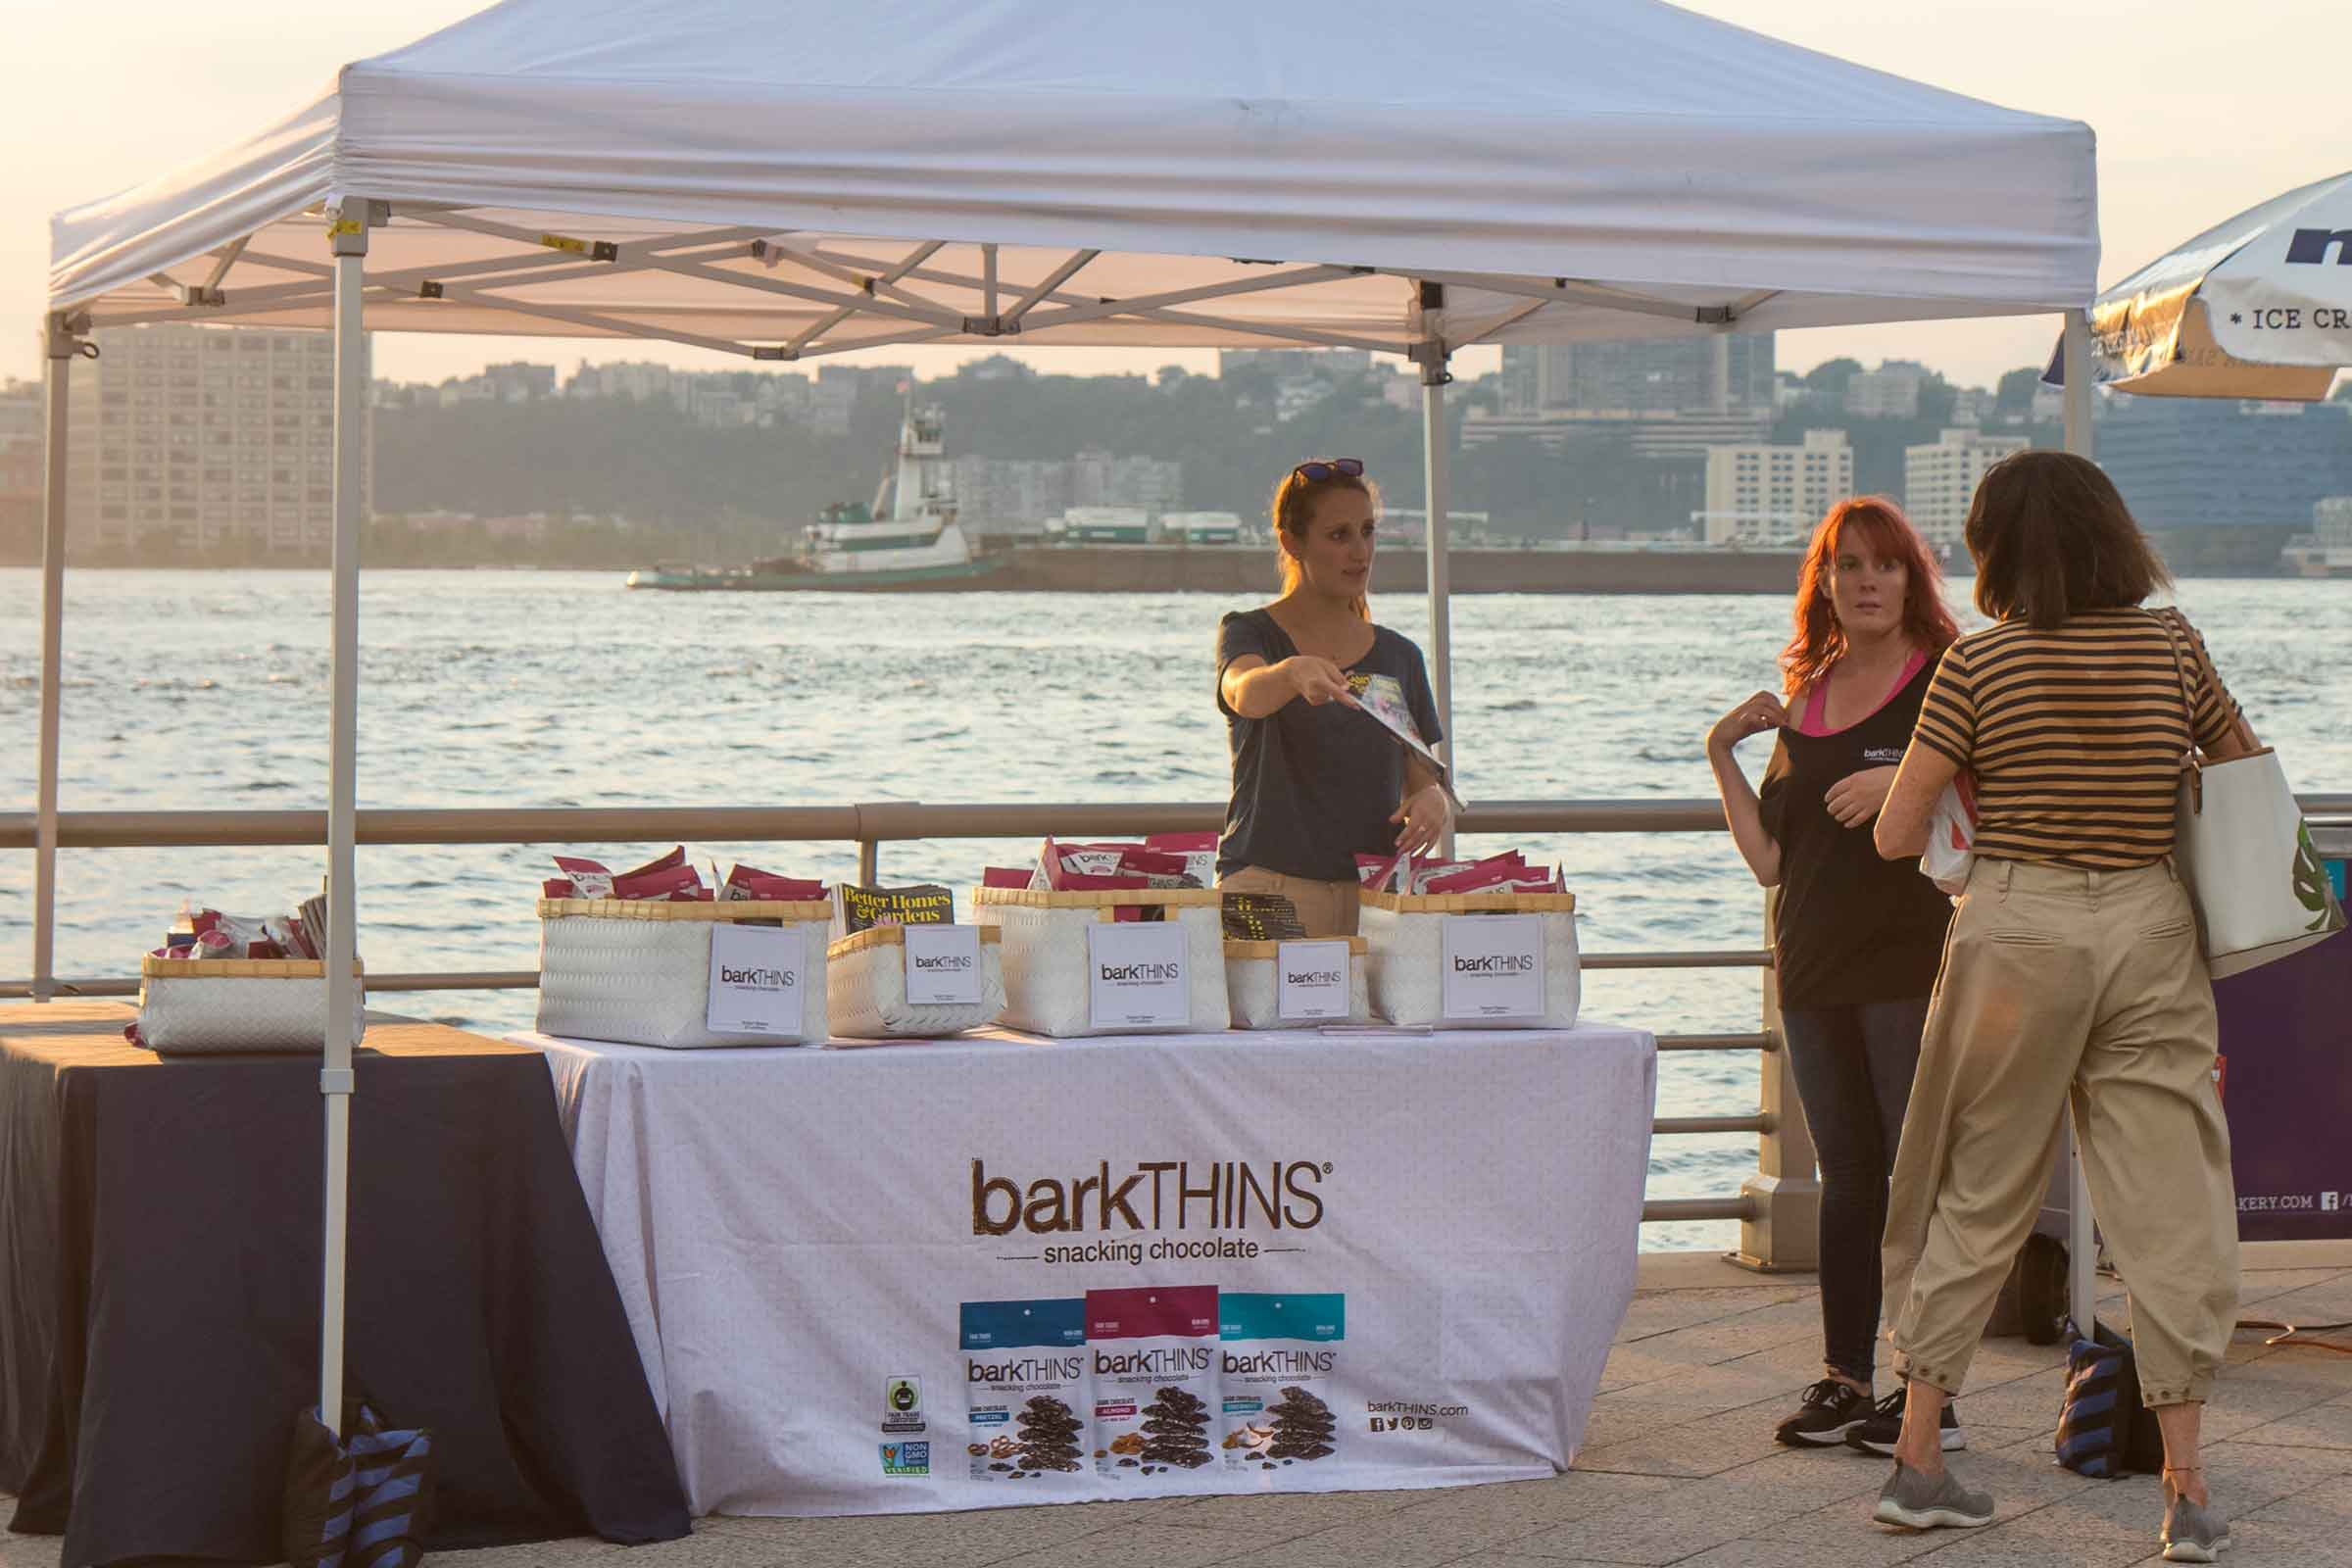 Bark Thins provides snacks as a sponsor for some of Hudson River Park's events